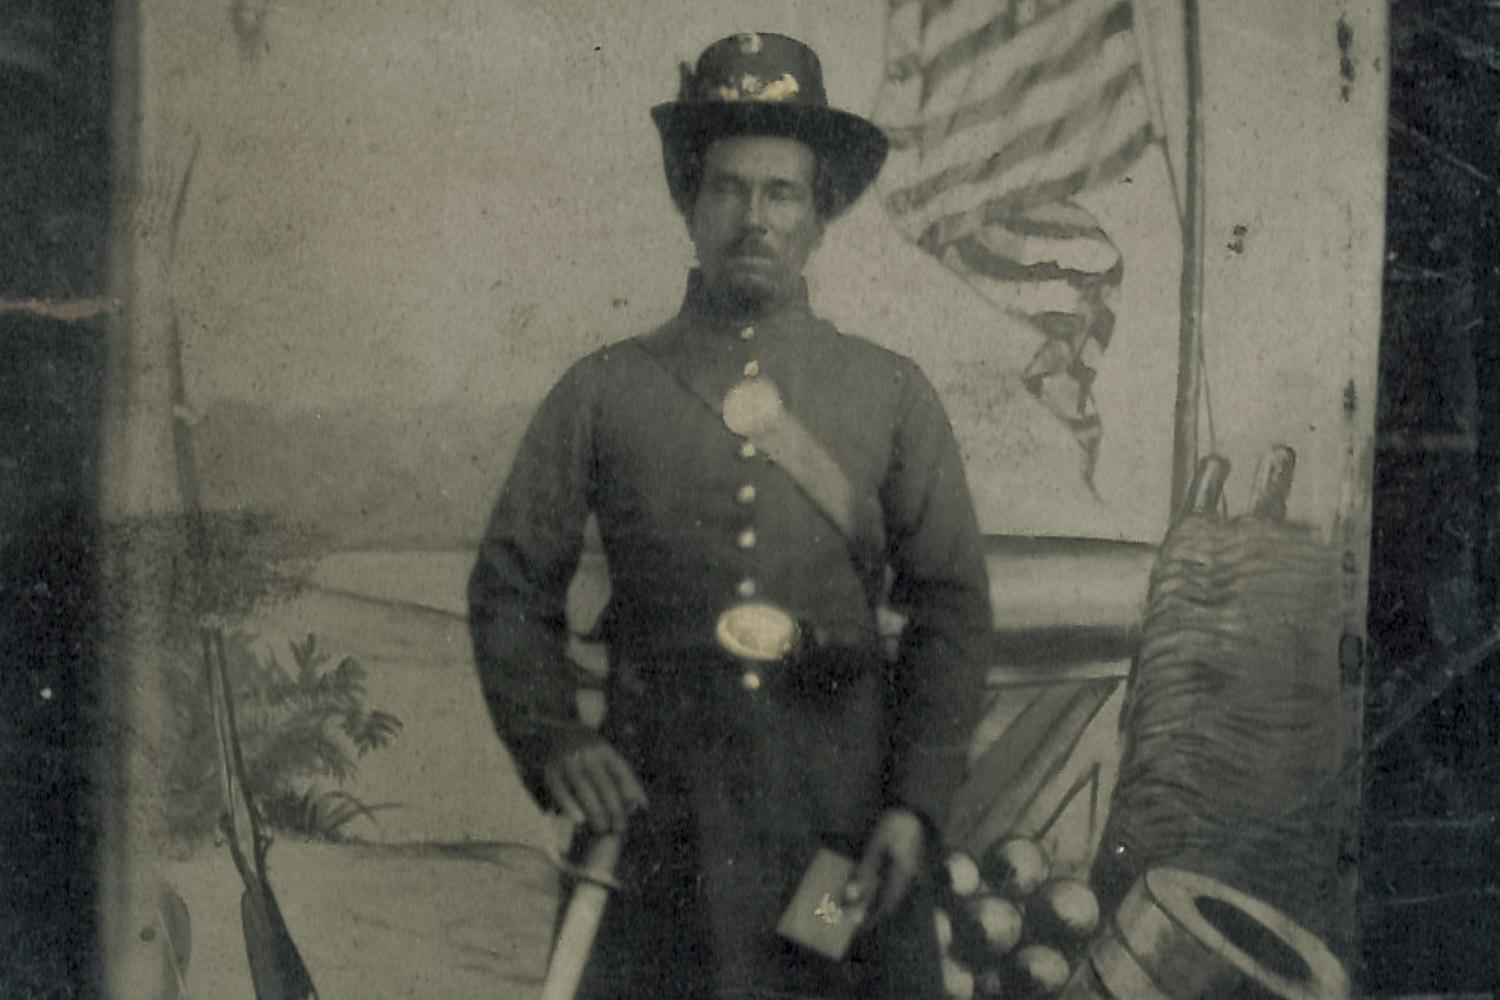 Willis Carter or Calhoun, 42, enlisted at the Benton Barracks in Missouri and was a cook in the regional field hospital.